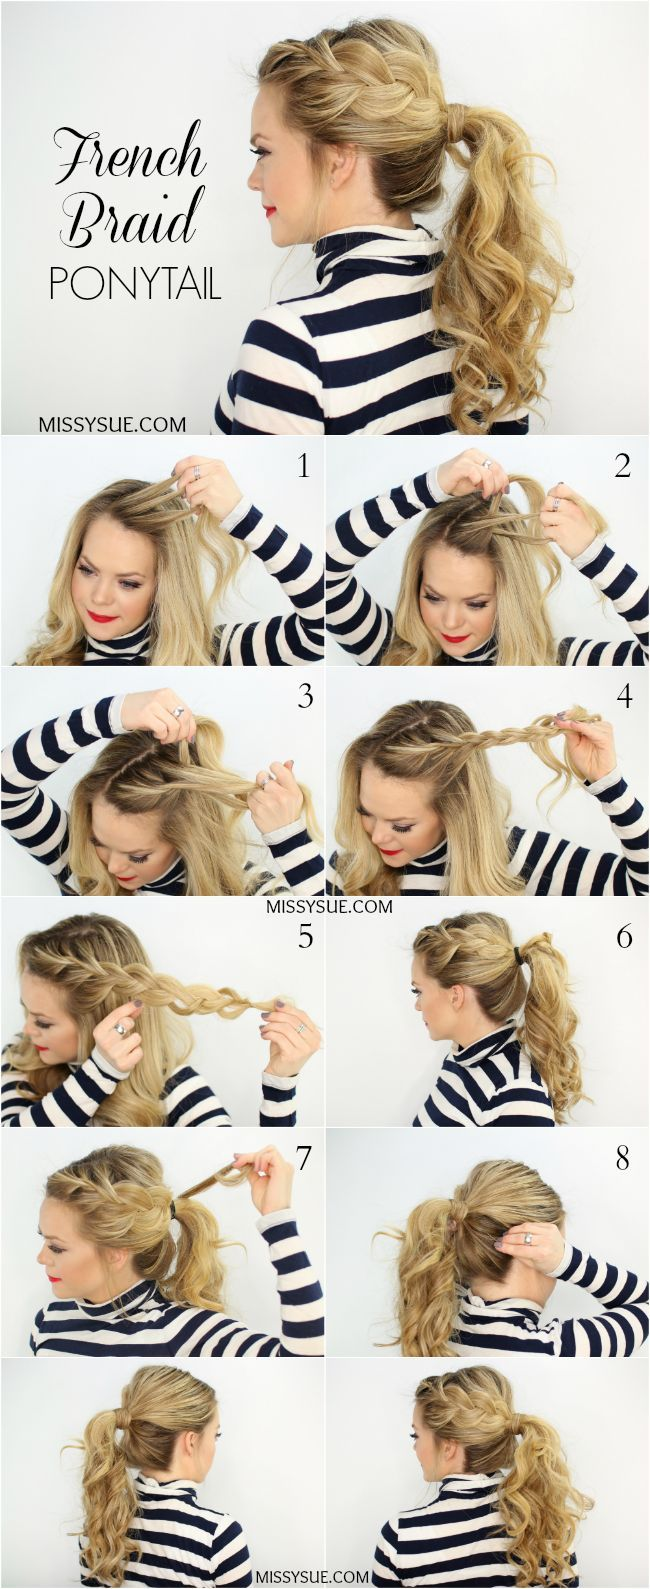 18 Cute Braided Ponytail Styles forecast